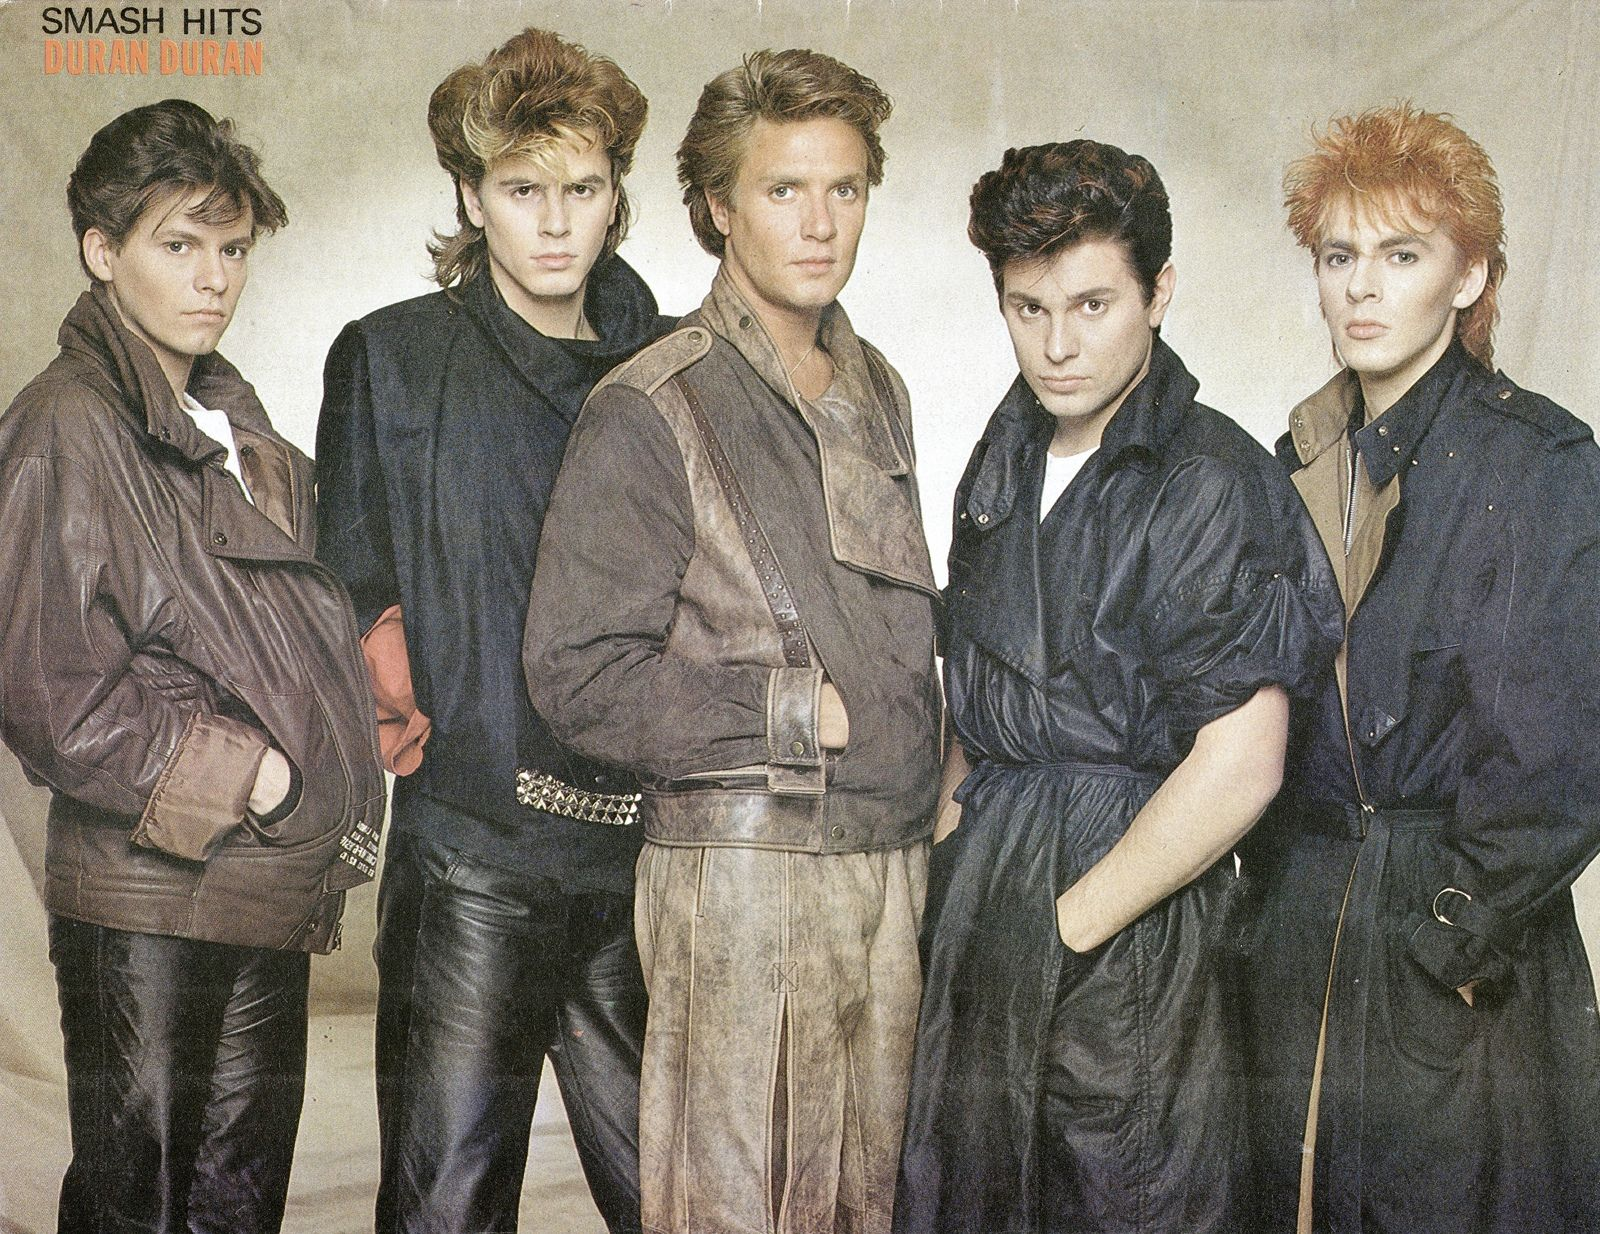 Find this Pin and more on Duran Duran. 80 best Duran Duran images on Pinterest